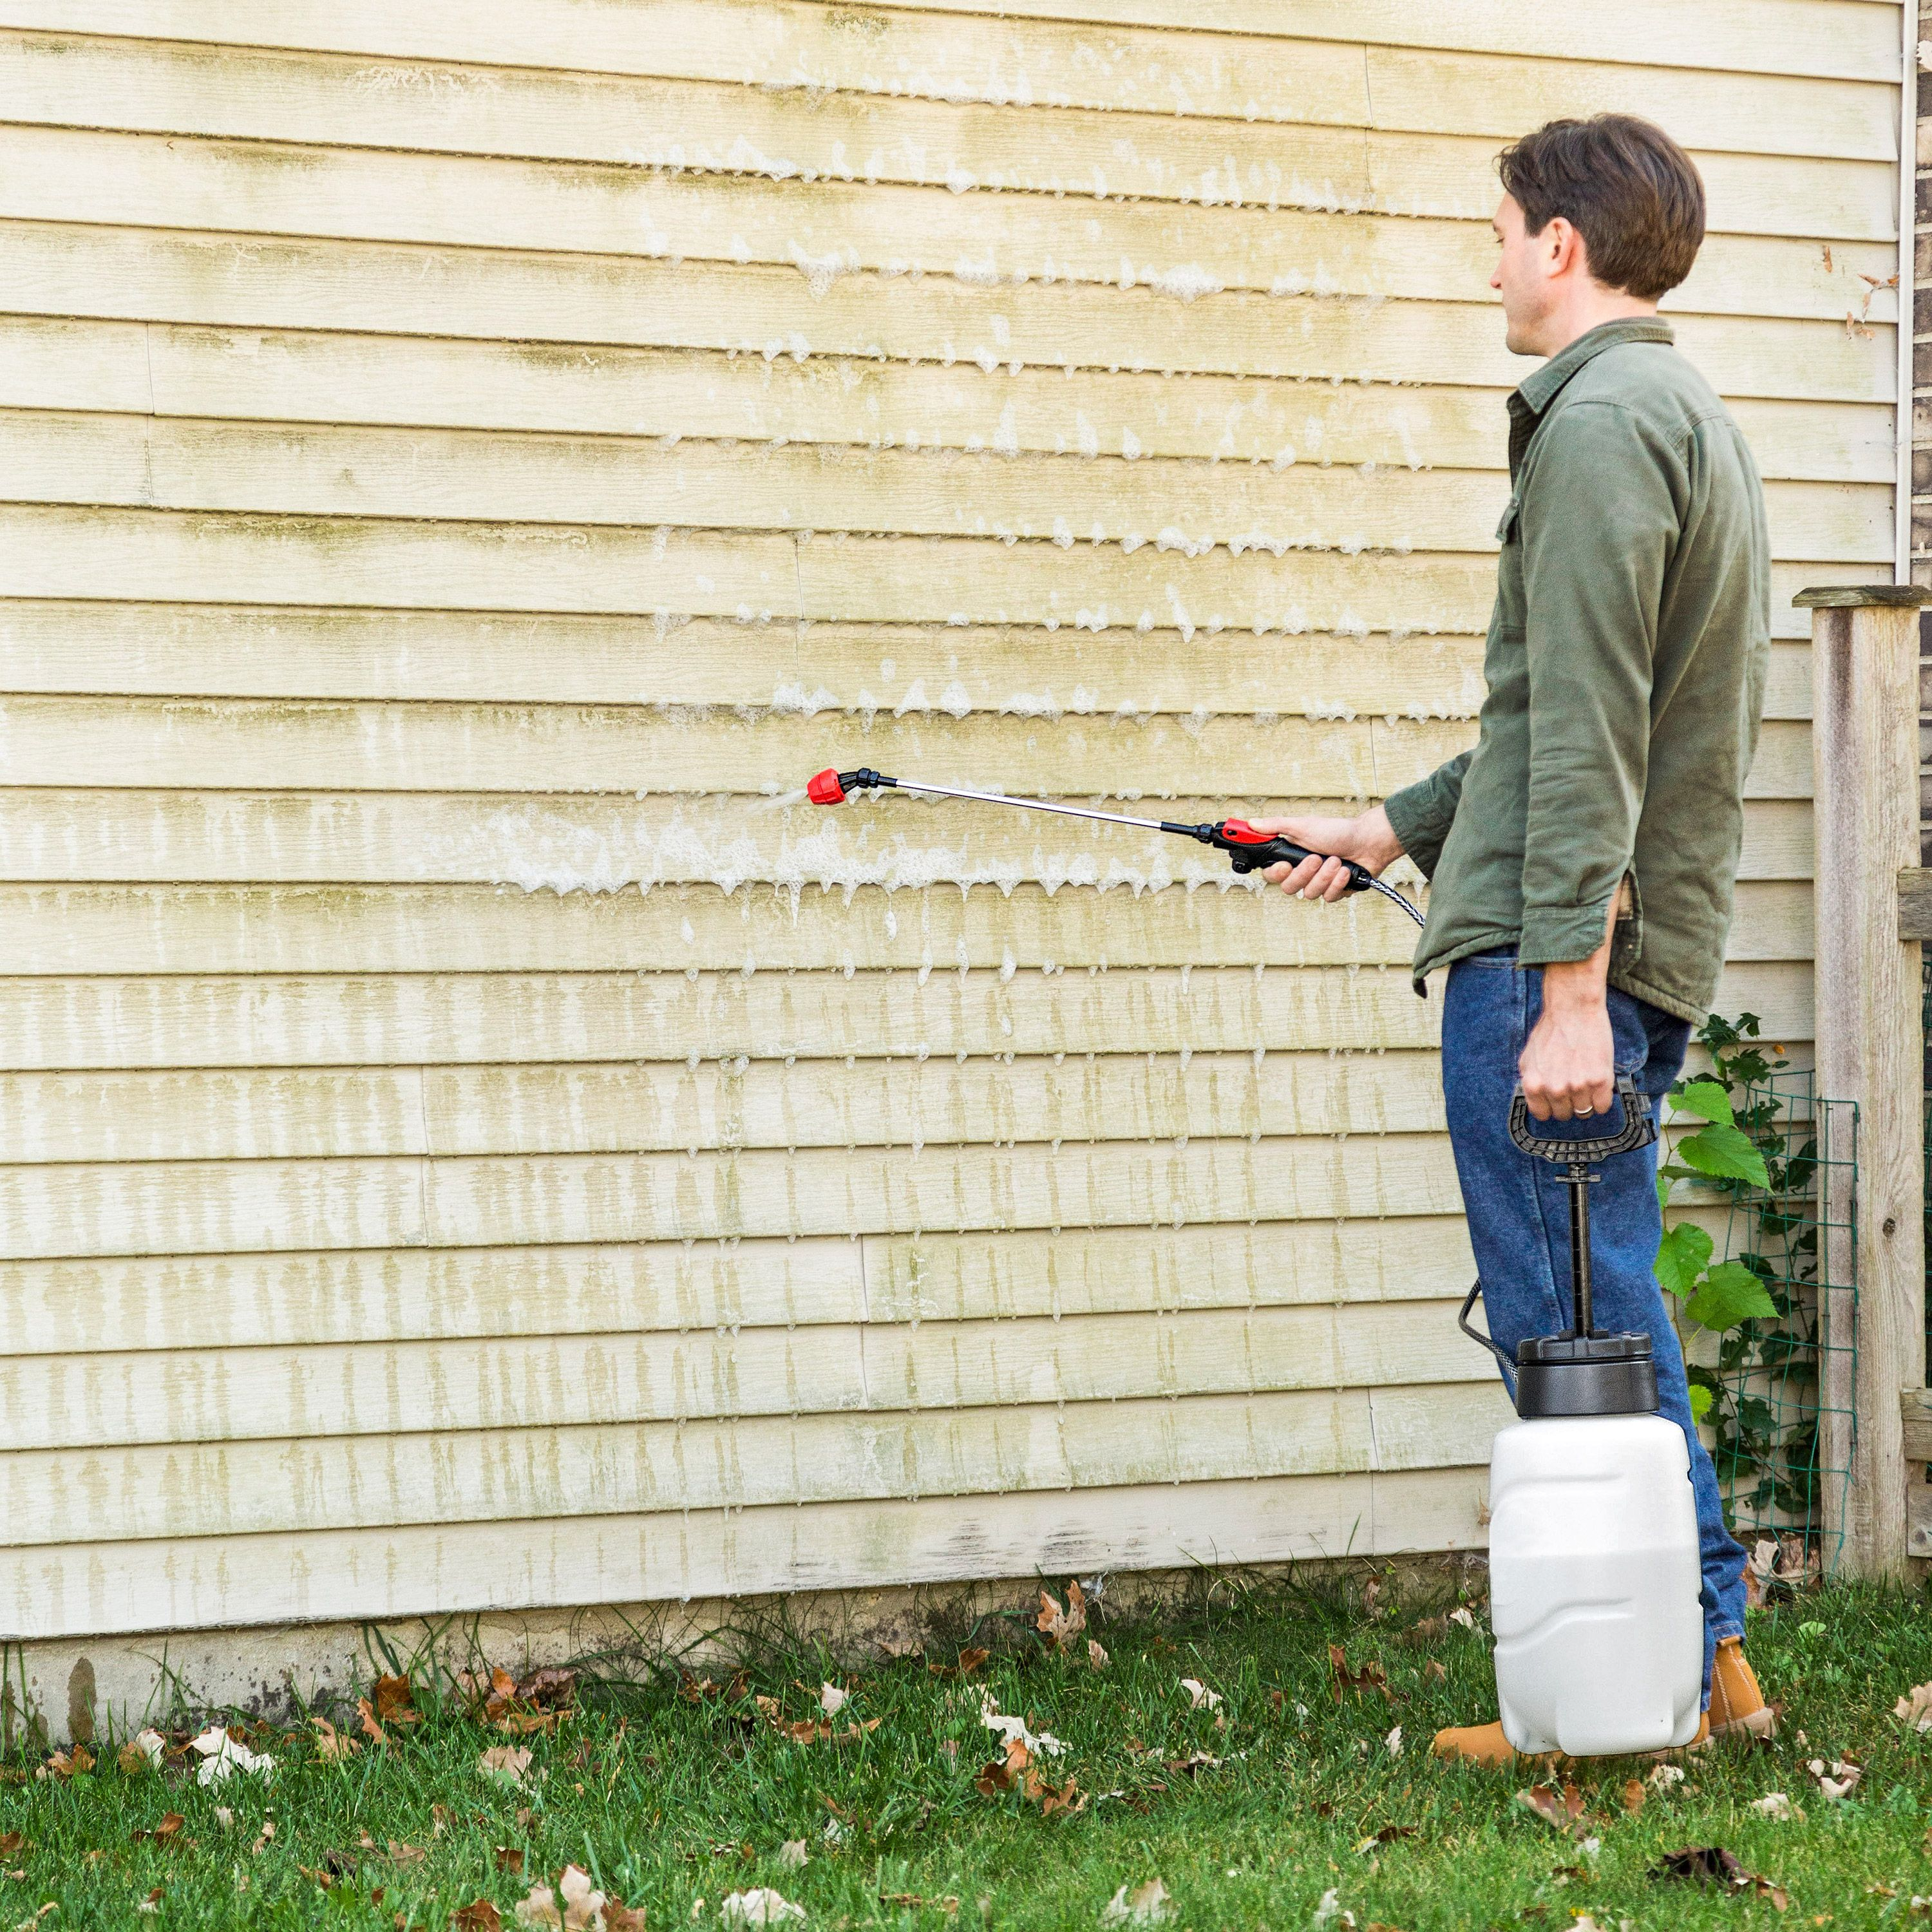 Banish Mildew From Siding House Cleaning Tips Cleaning Hacks Cleaning Painted Walls